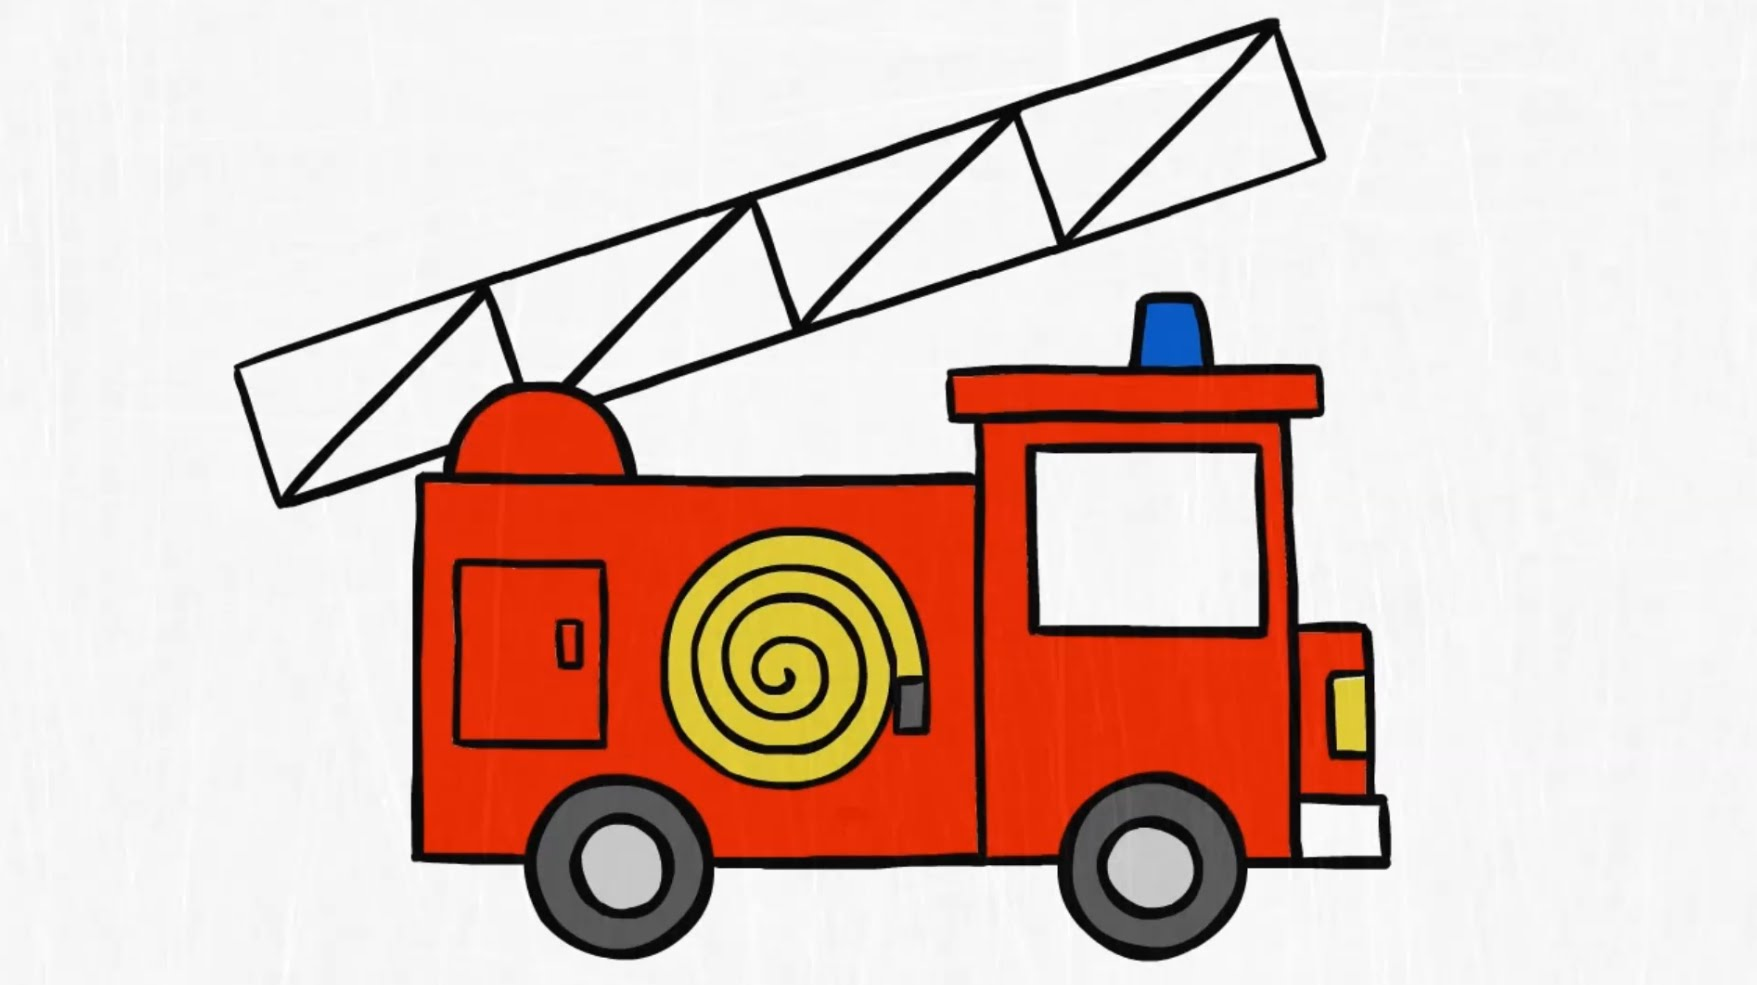 How to draw. a FIRE TRUCK - YouTube